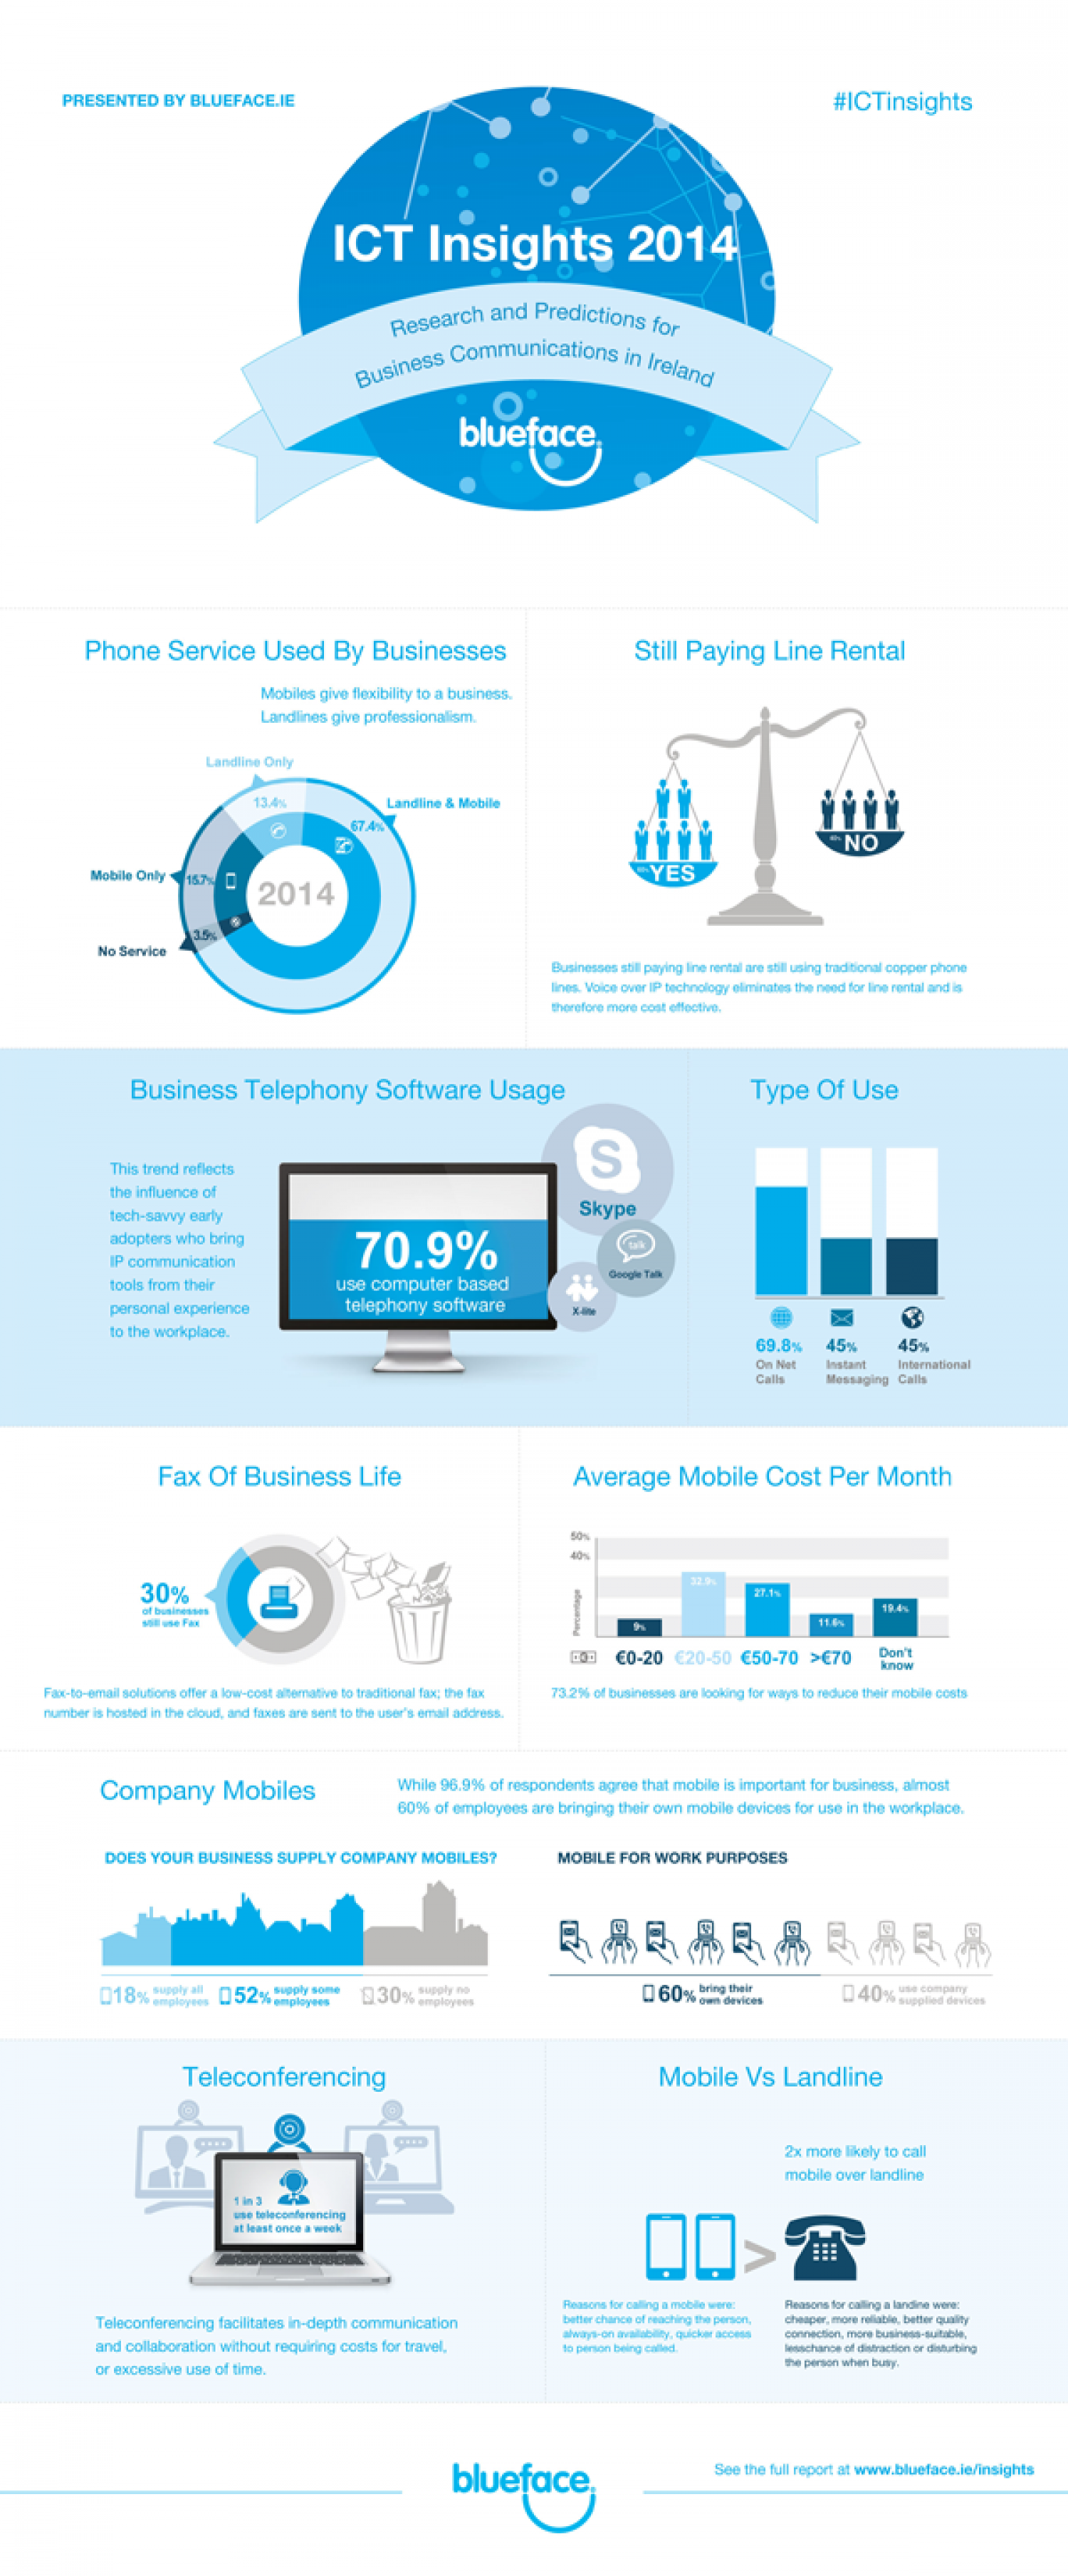 ICT Insights 2014 Infographic